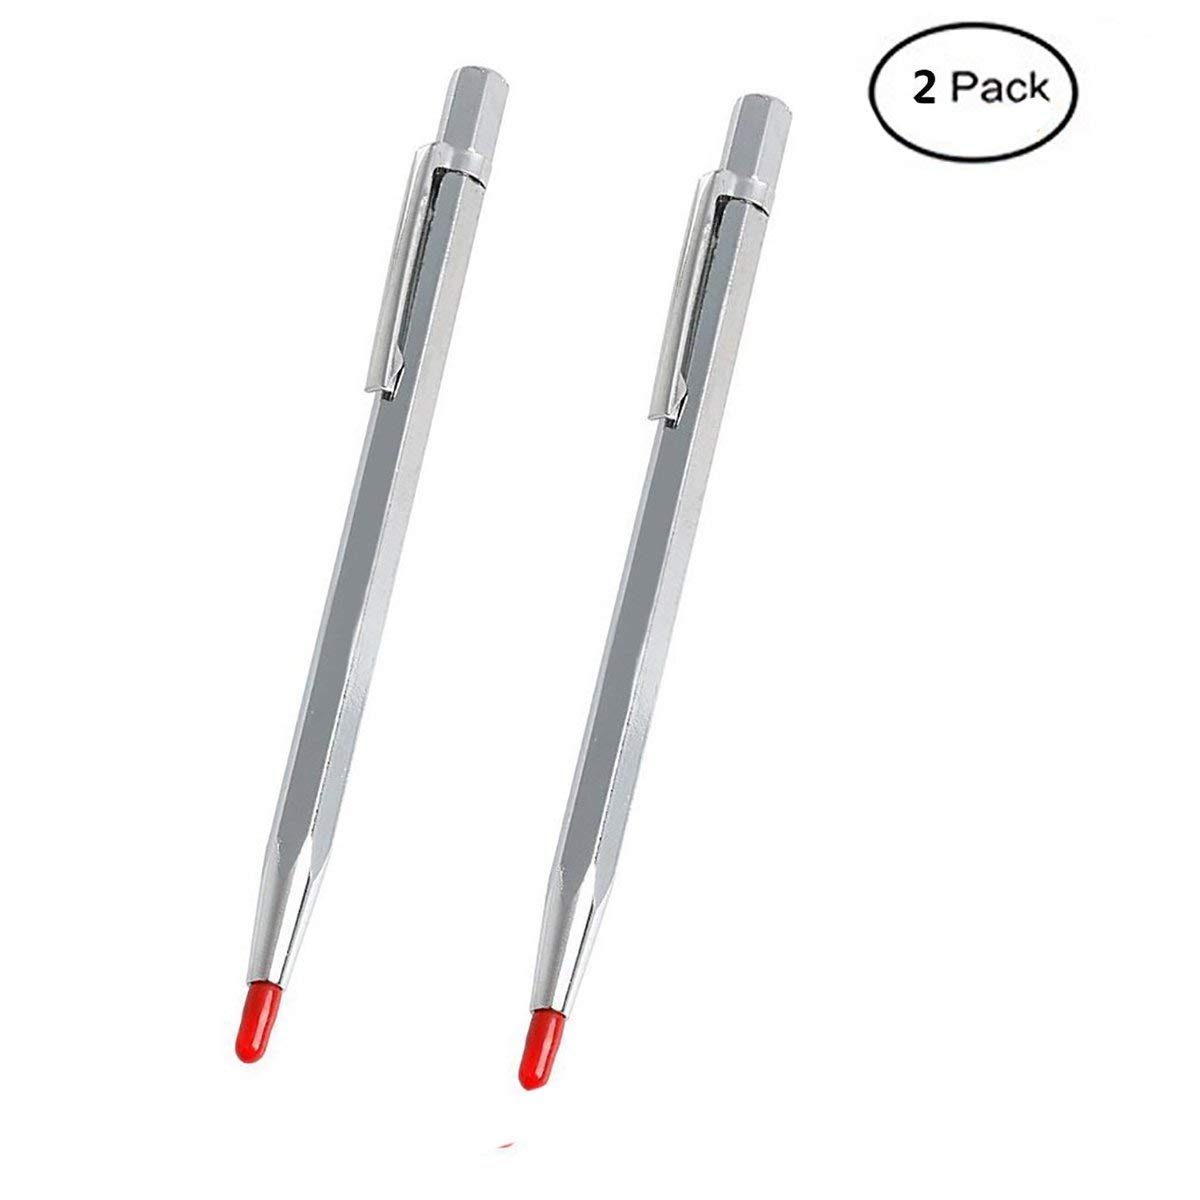 2 Pack Tungsten Carbide Scriber with Magnet Aluminum Etching Engraving Pen with Clip for Glass//Ceramics//Hardened Steel by Fabcell